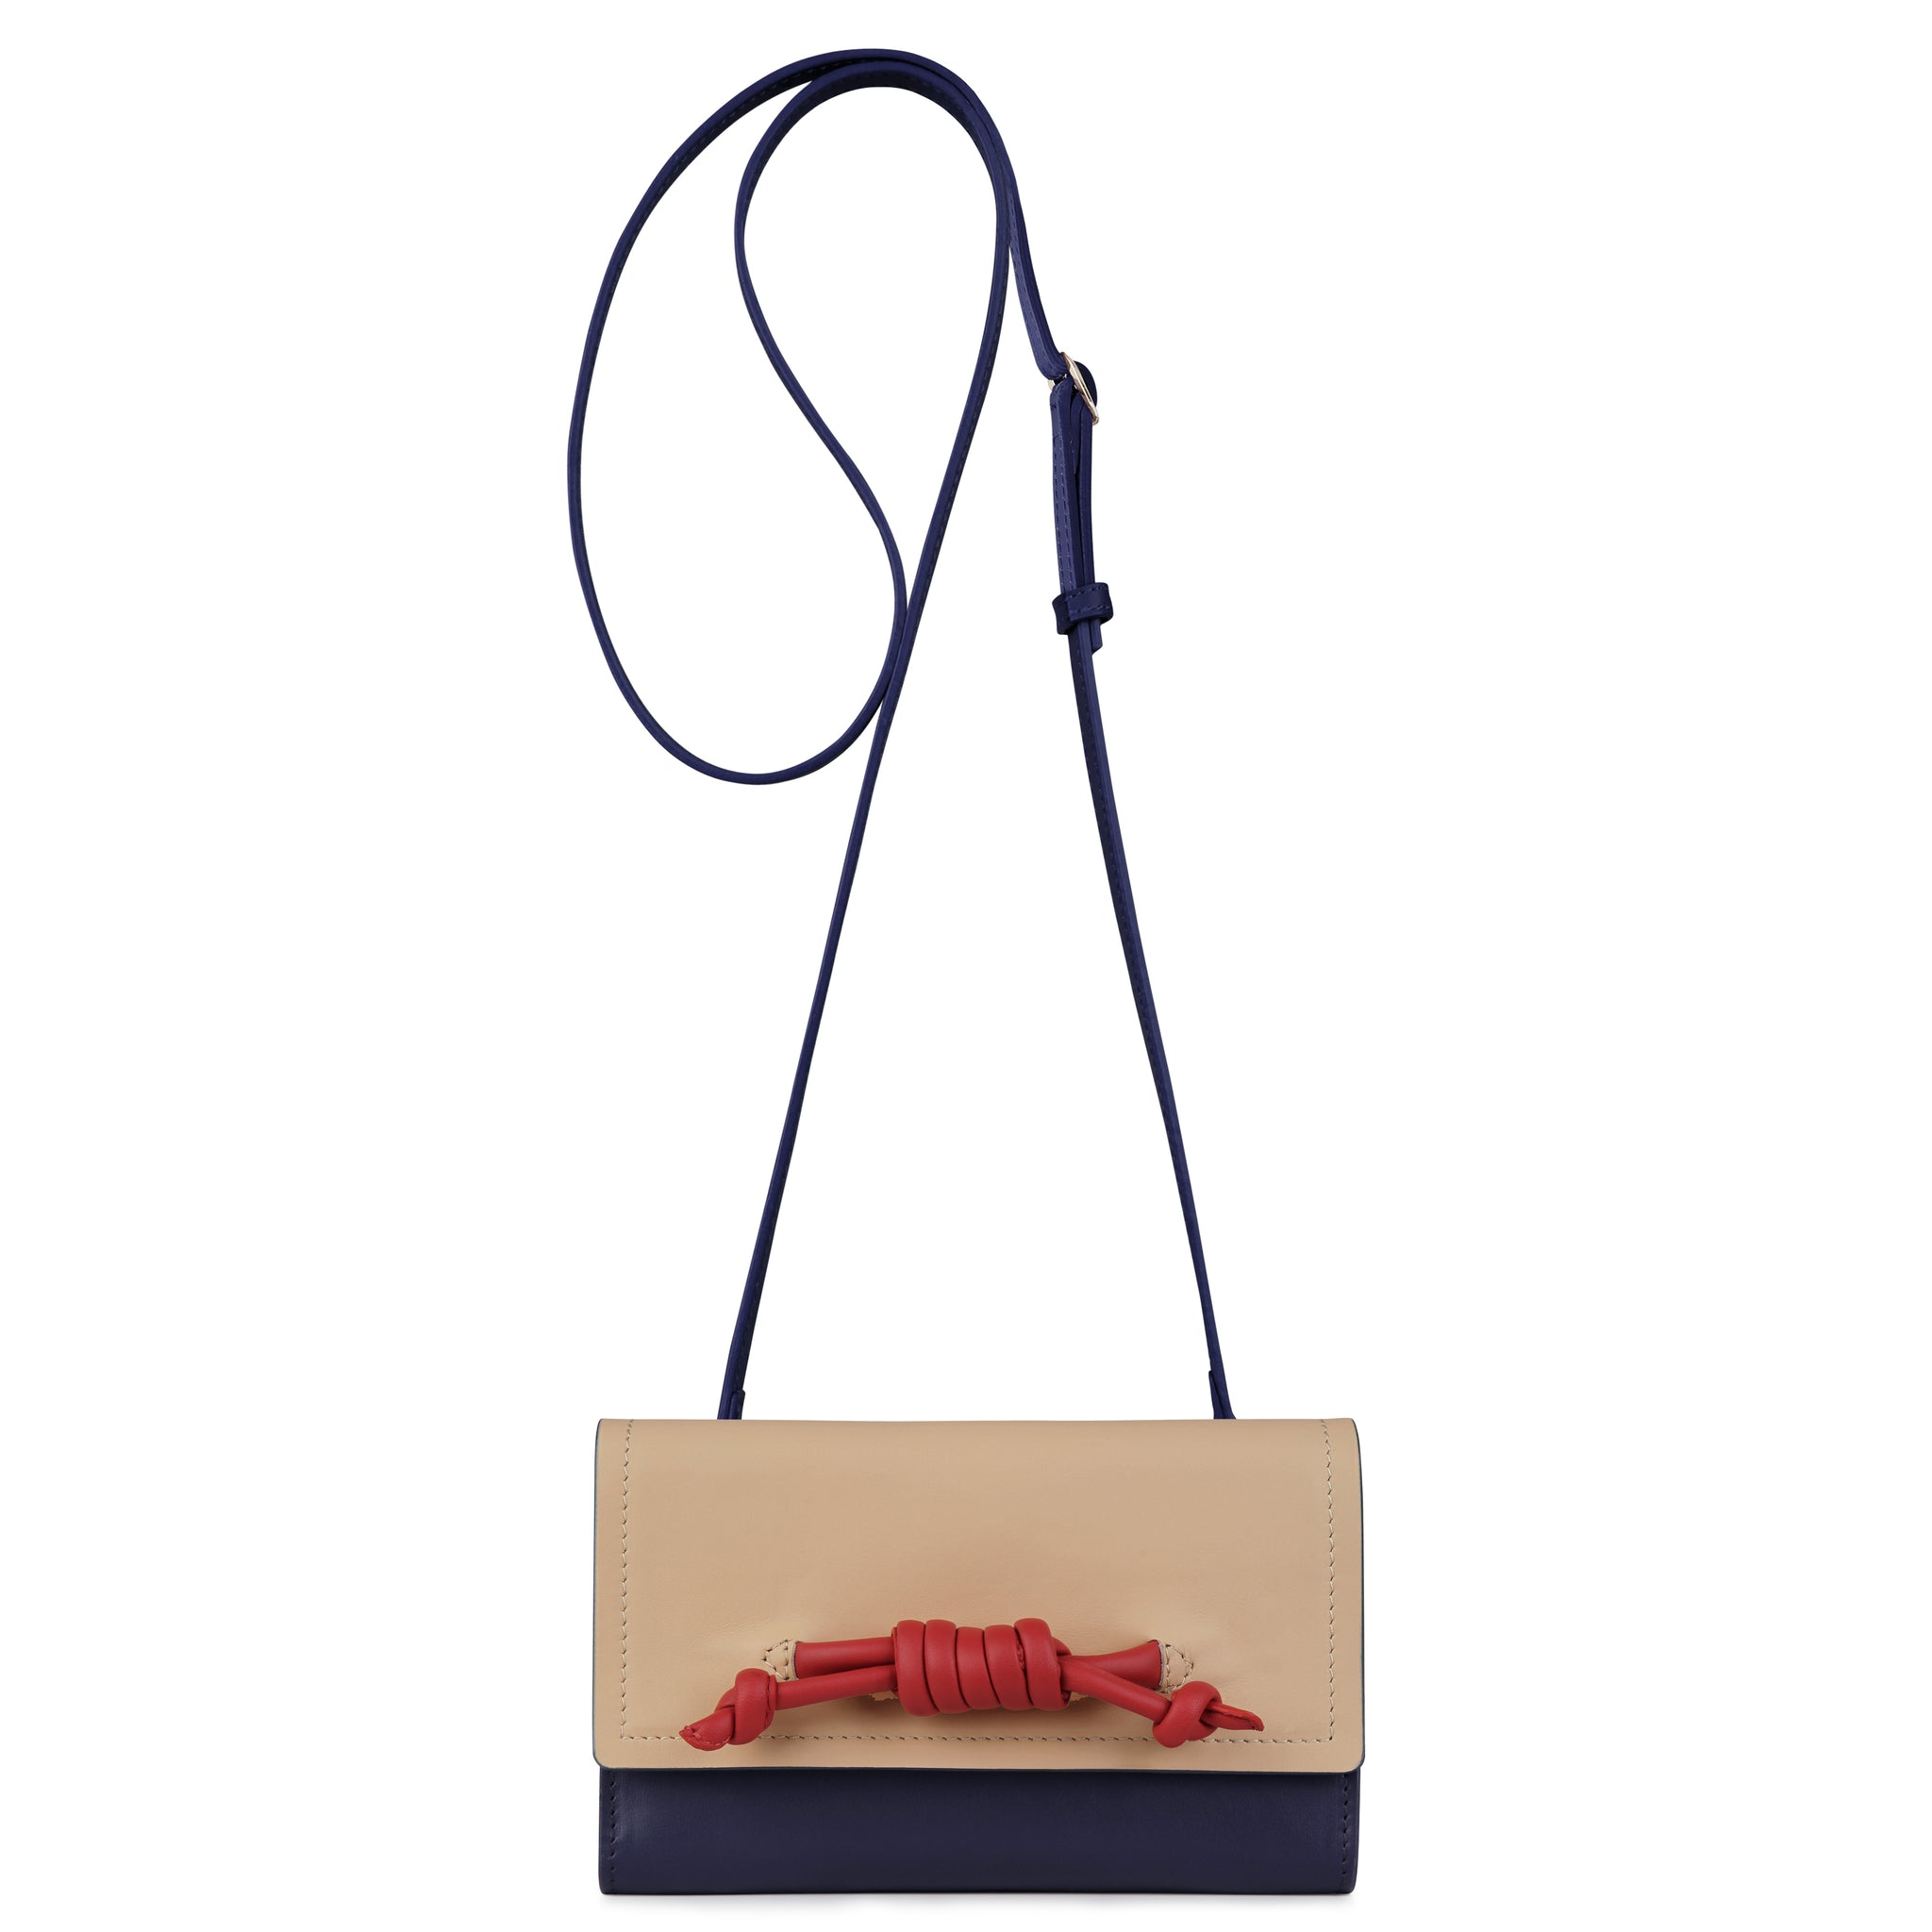 A convertible leather navy, nude and red phone wallet with a knot detail in front shown as a crossbody bag, front image.